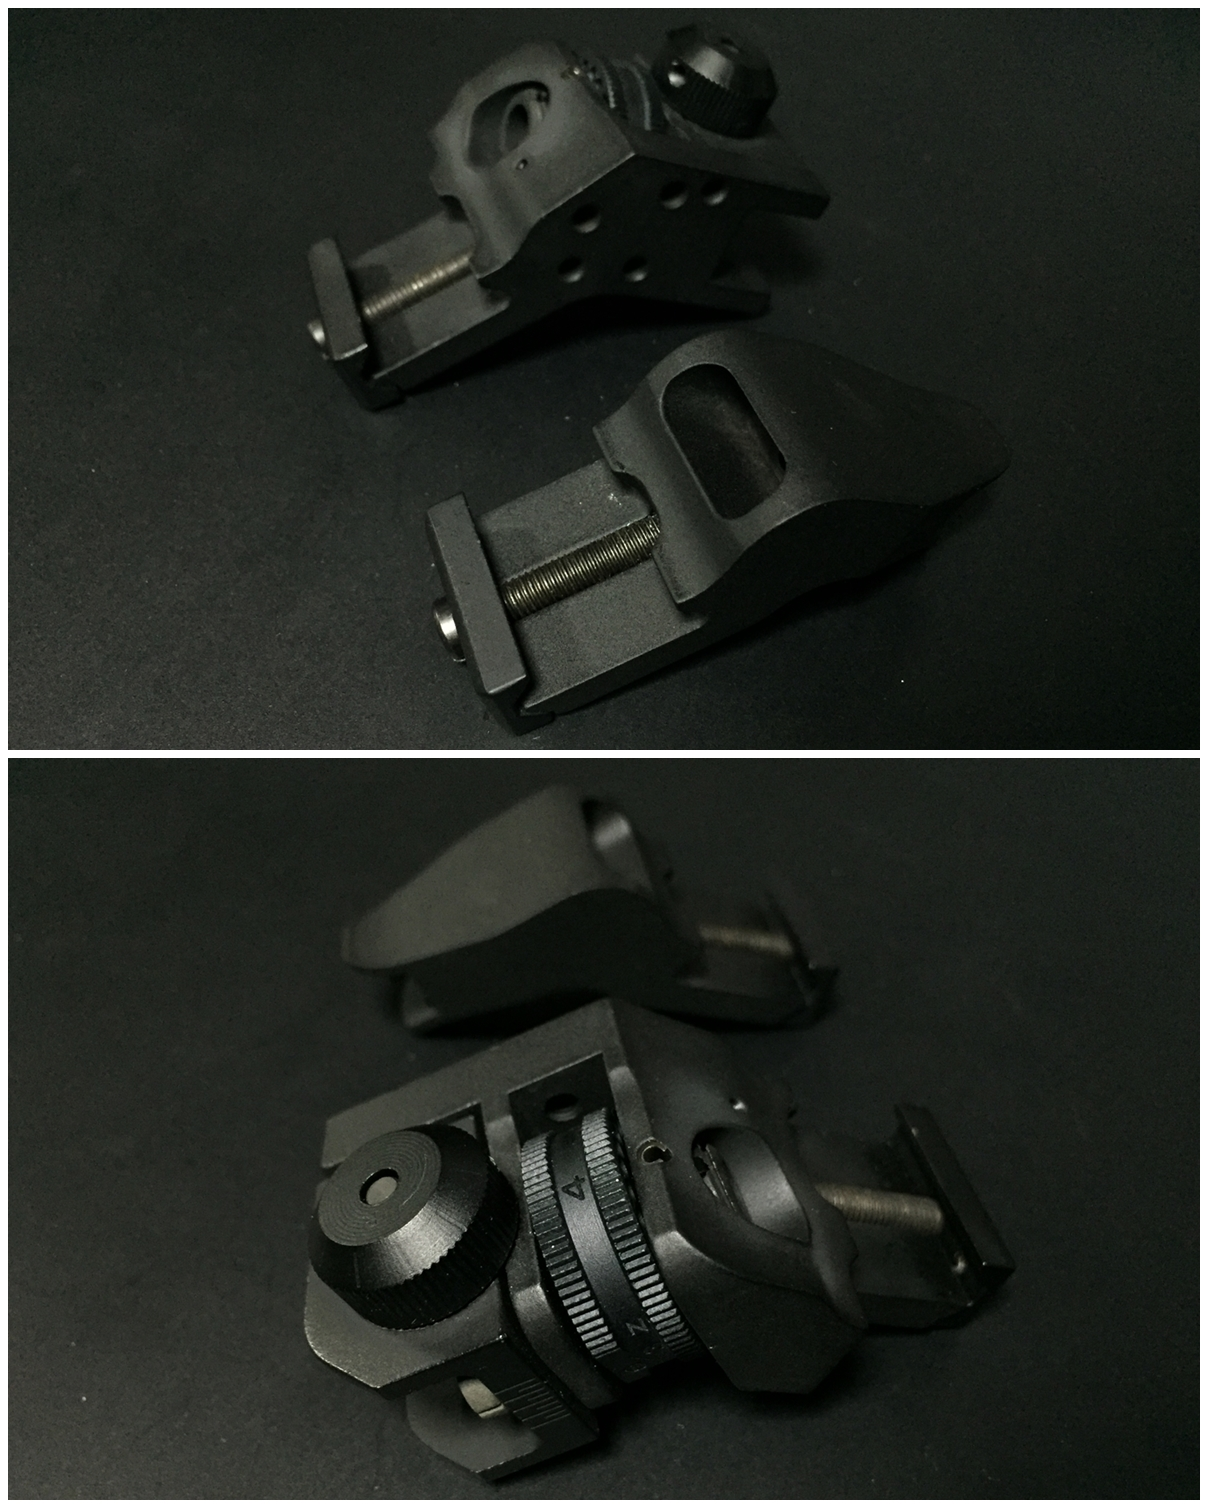 7 RAPID TRANSITION SIGHT FRONT & REAR DUECK DEFENSE TYPE ラピッドトランジションサイト オフセットサイト カスタム 取付 実物 レプリカ 比較